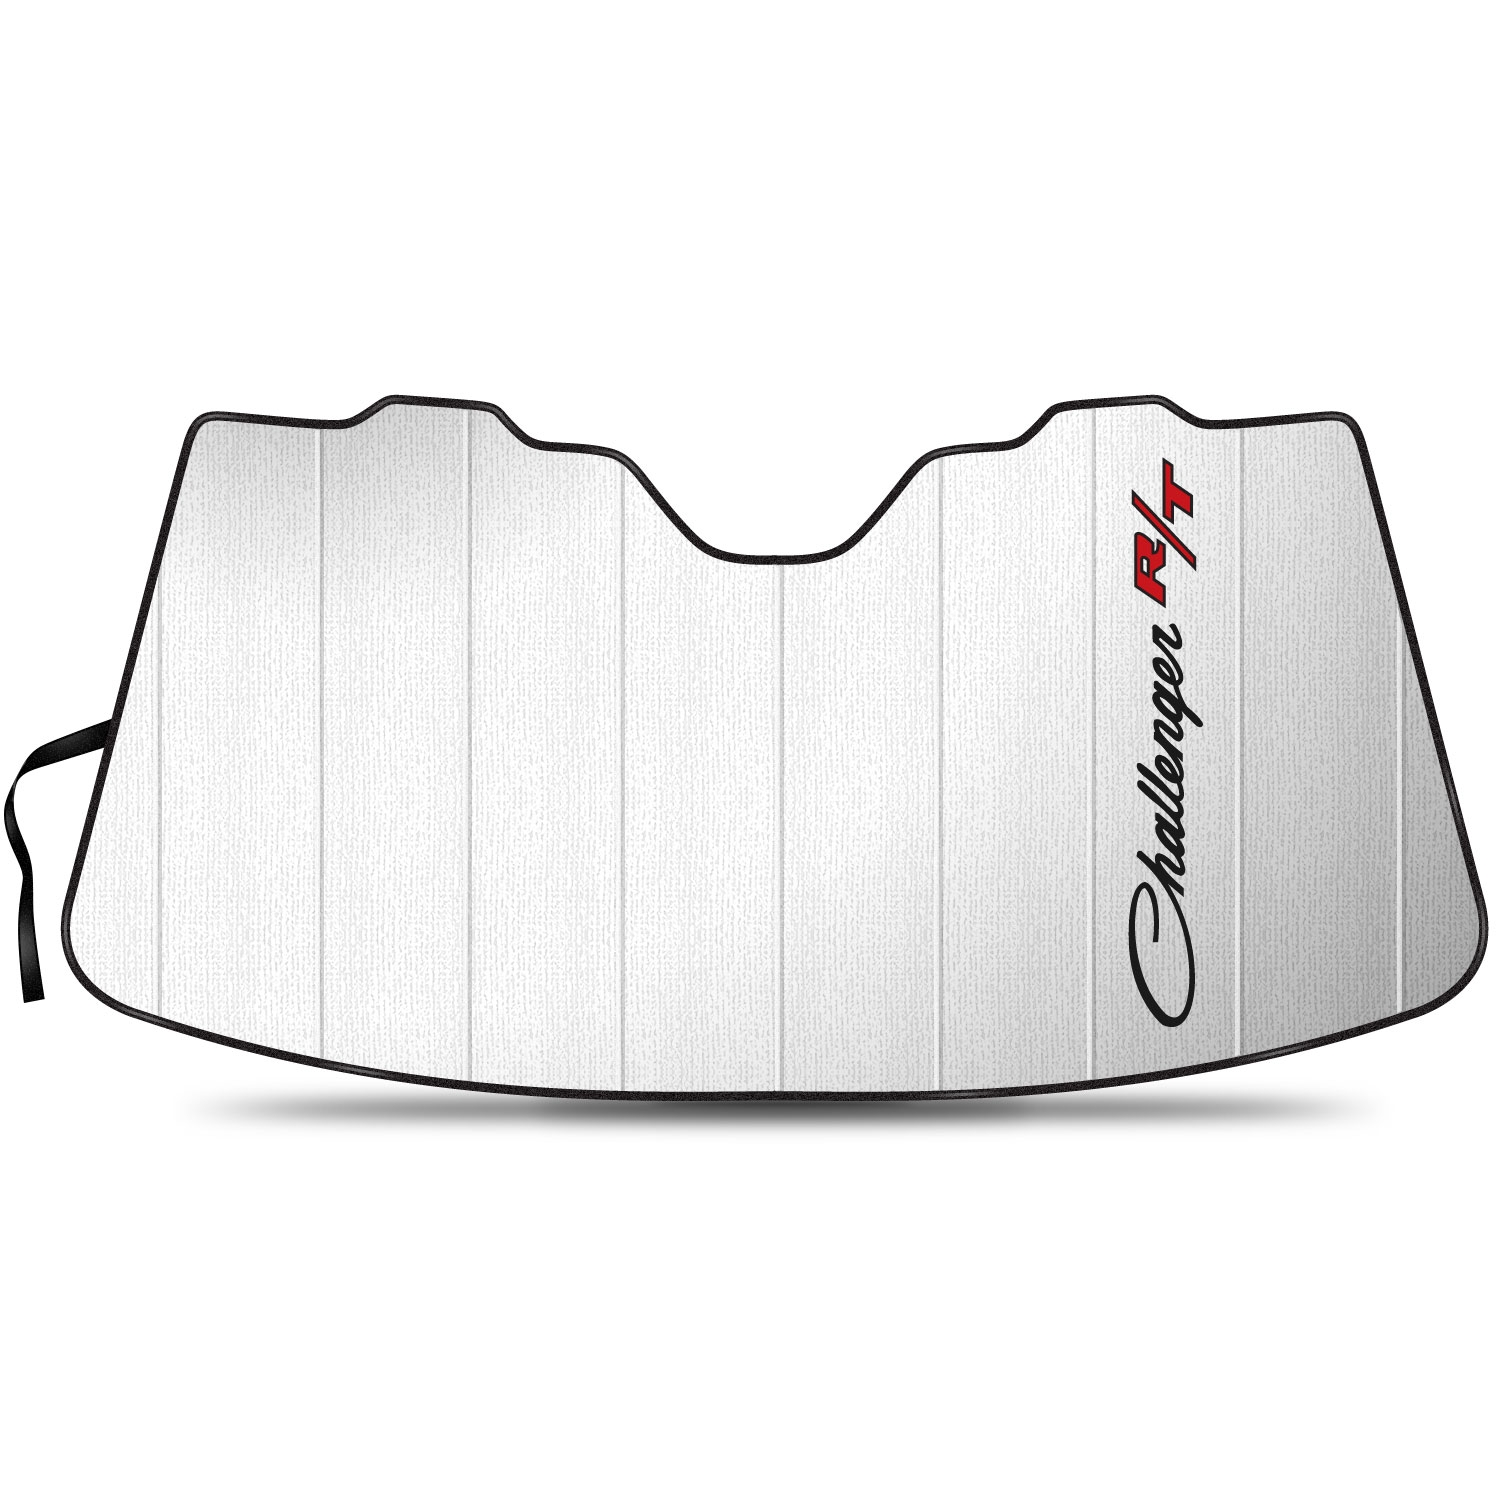 "Dodge Challenger R/T Classic Logo 55-1/2""x 27"" Stand Up Universal Fit Auto Windshield Sun Shade"